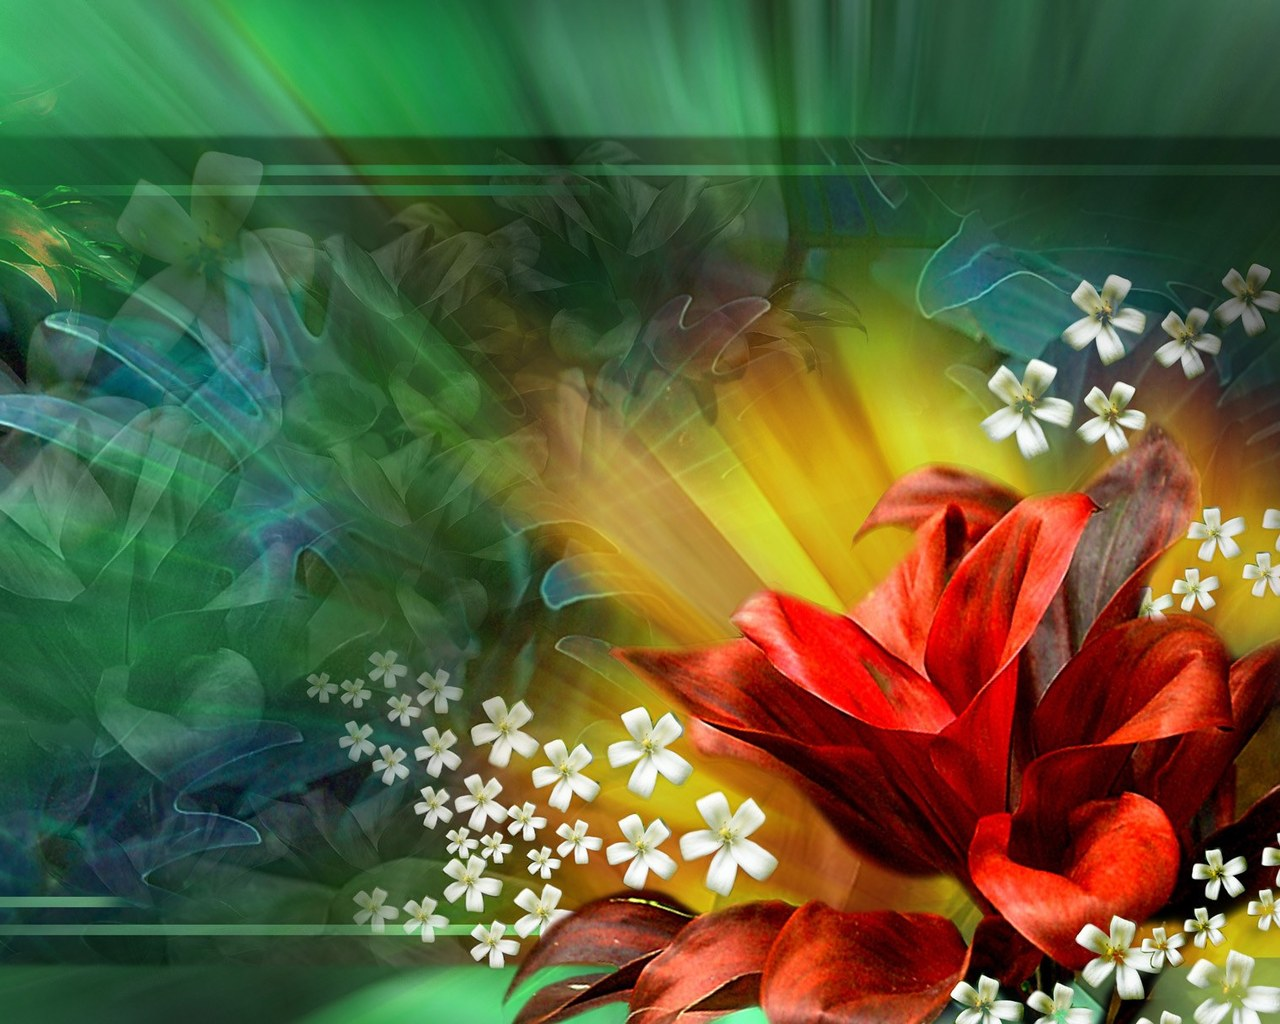 Download Desktop 3D Animated Background Wallpapers And Screensavers 1280x1024